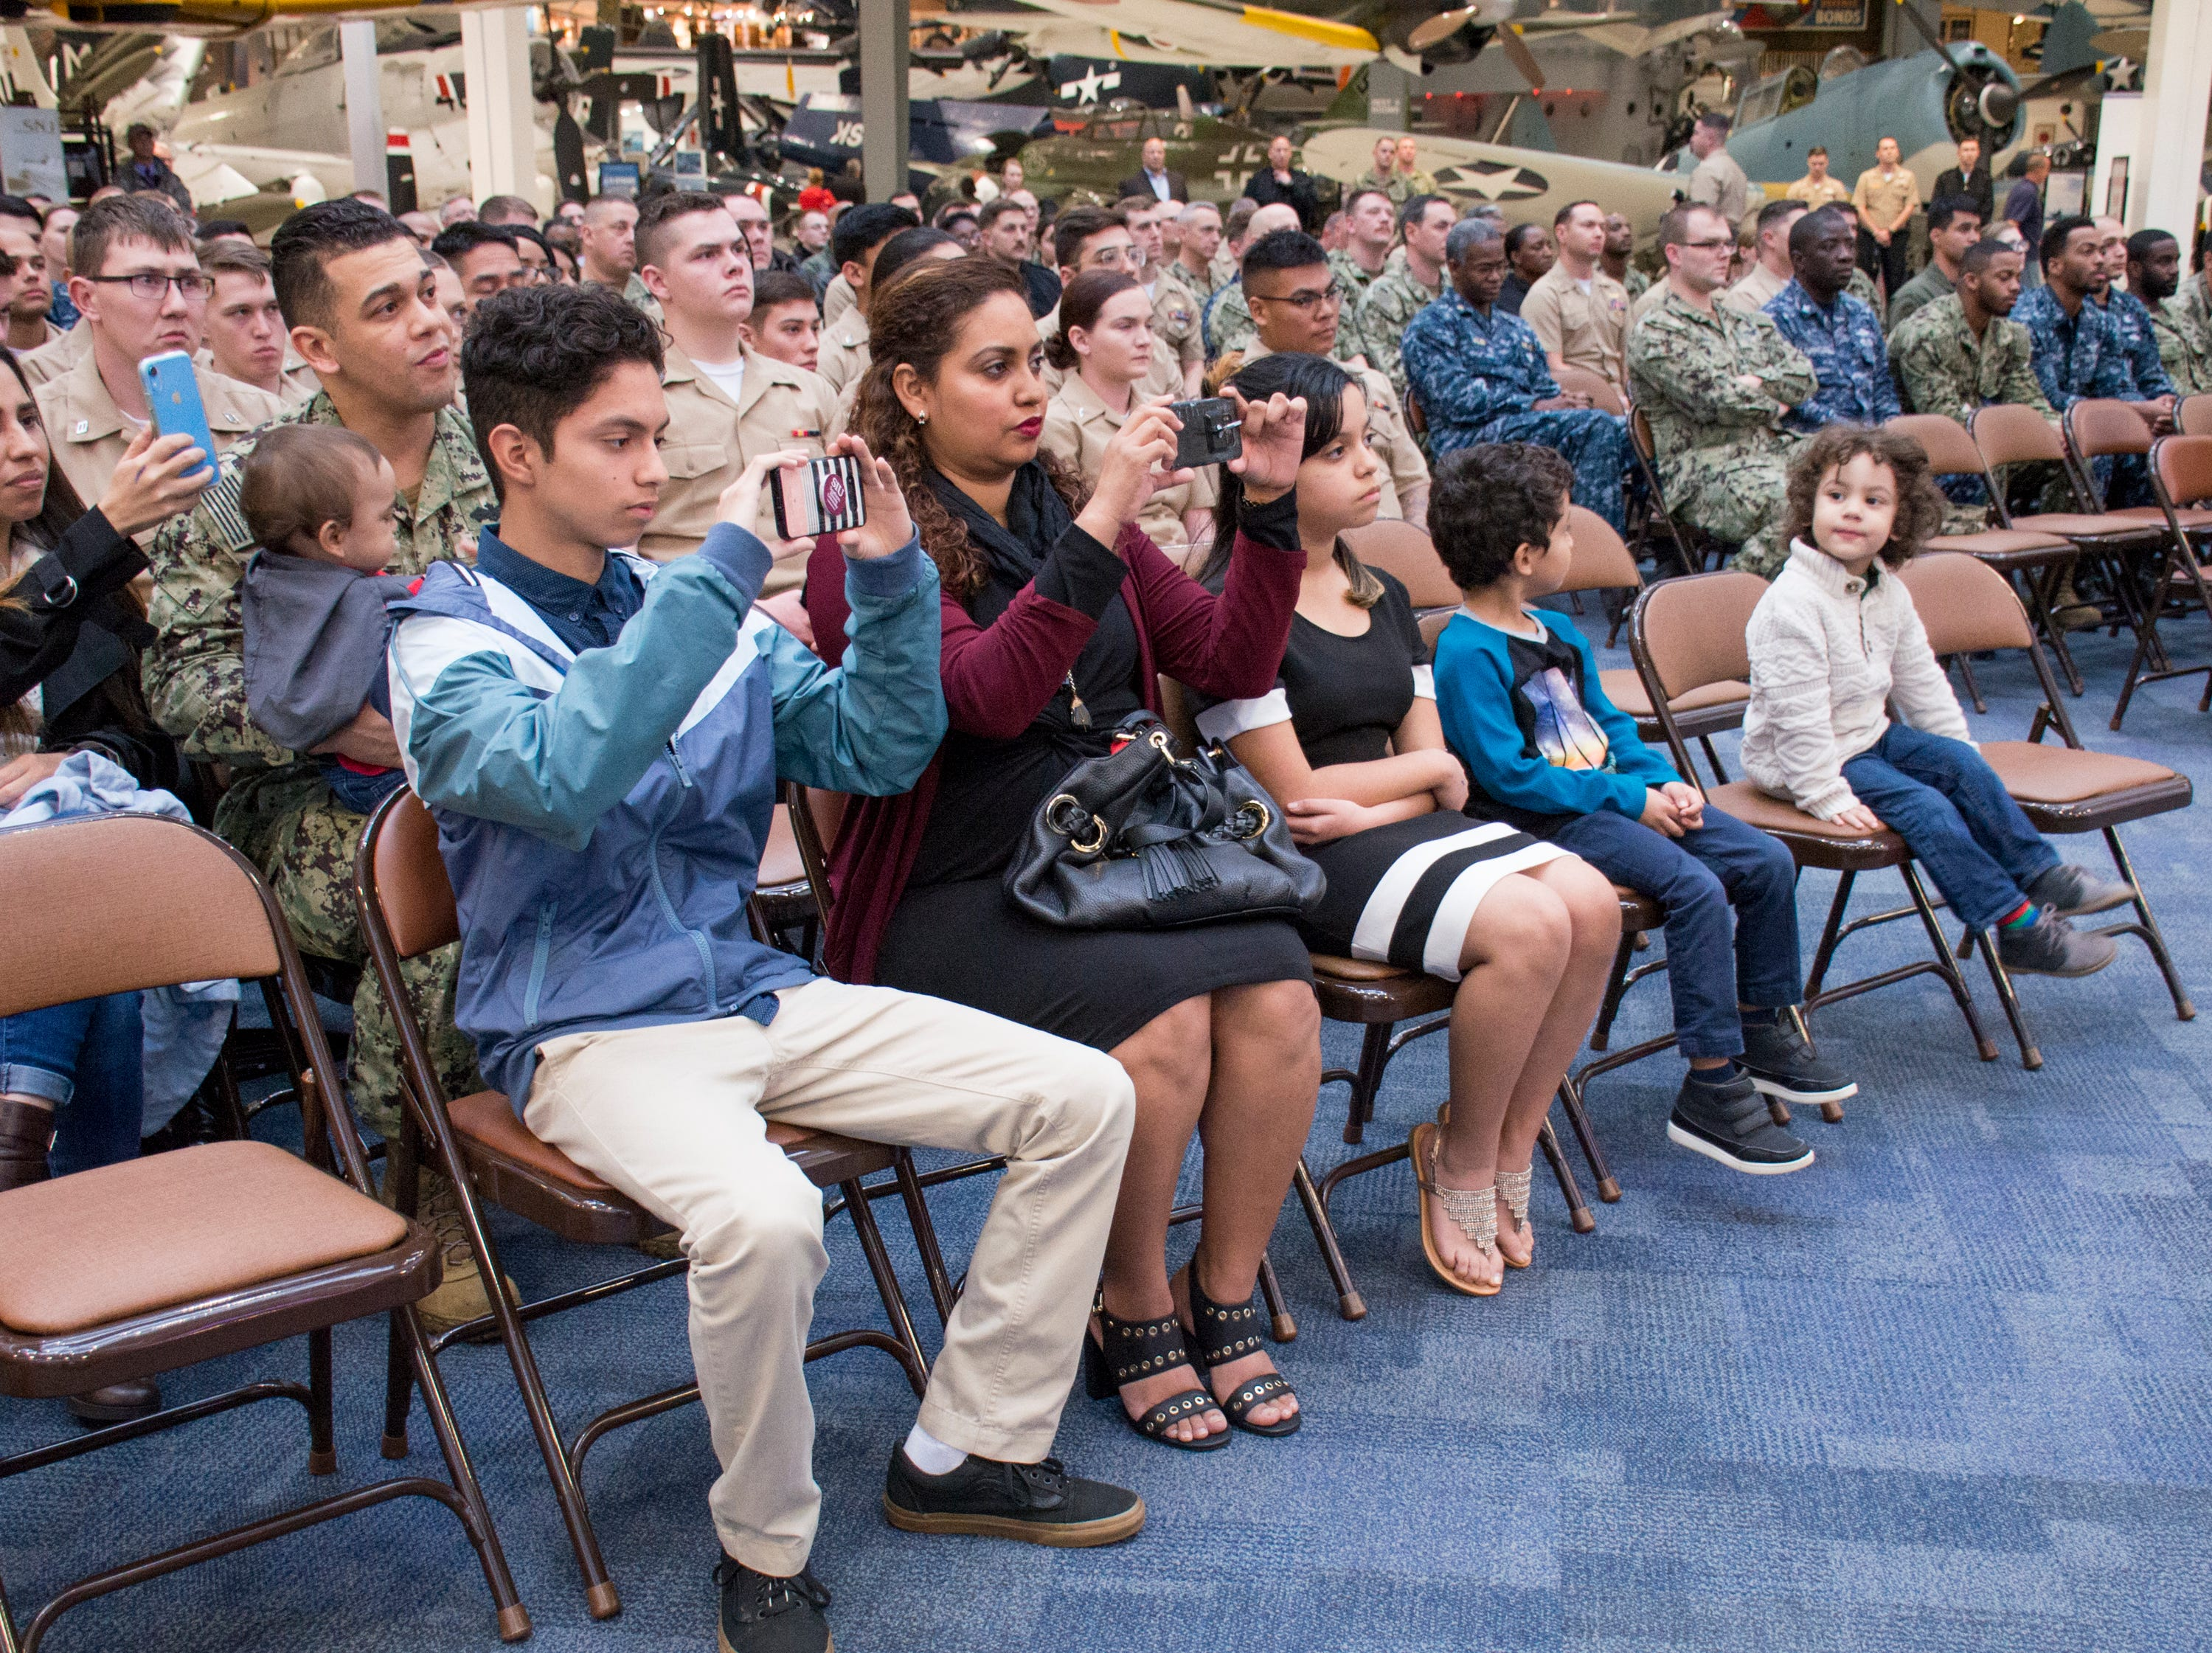 Navy Hospital Corpsman 1st Class Eduardo Sanchez-Padilla's family record video as he is awarded the Purple Heart during a ceremony at the National Naval Aviation Museum in Pensacola on Wednesday, January 23, 2019.  Sanchez-Padilla was wounded in Afghanistan in 2009.